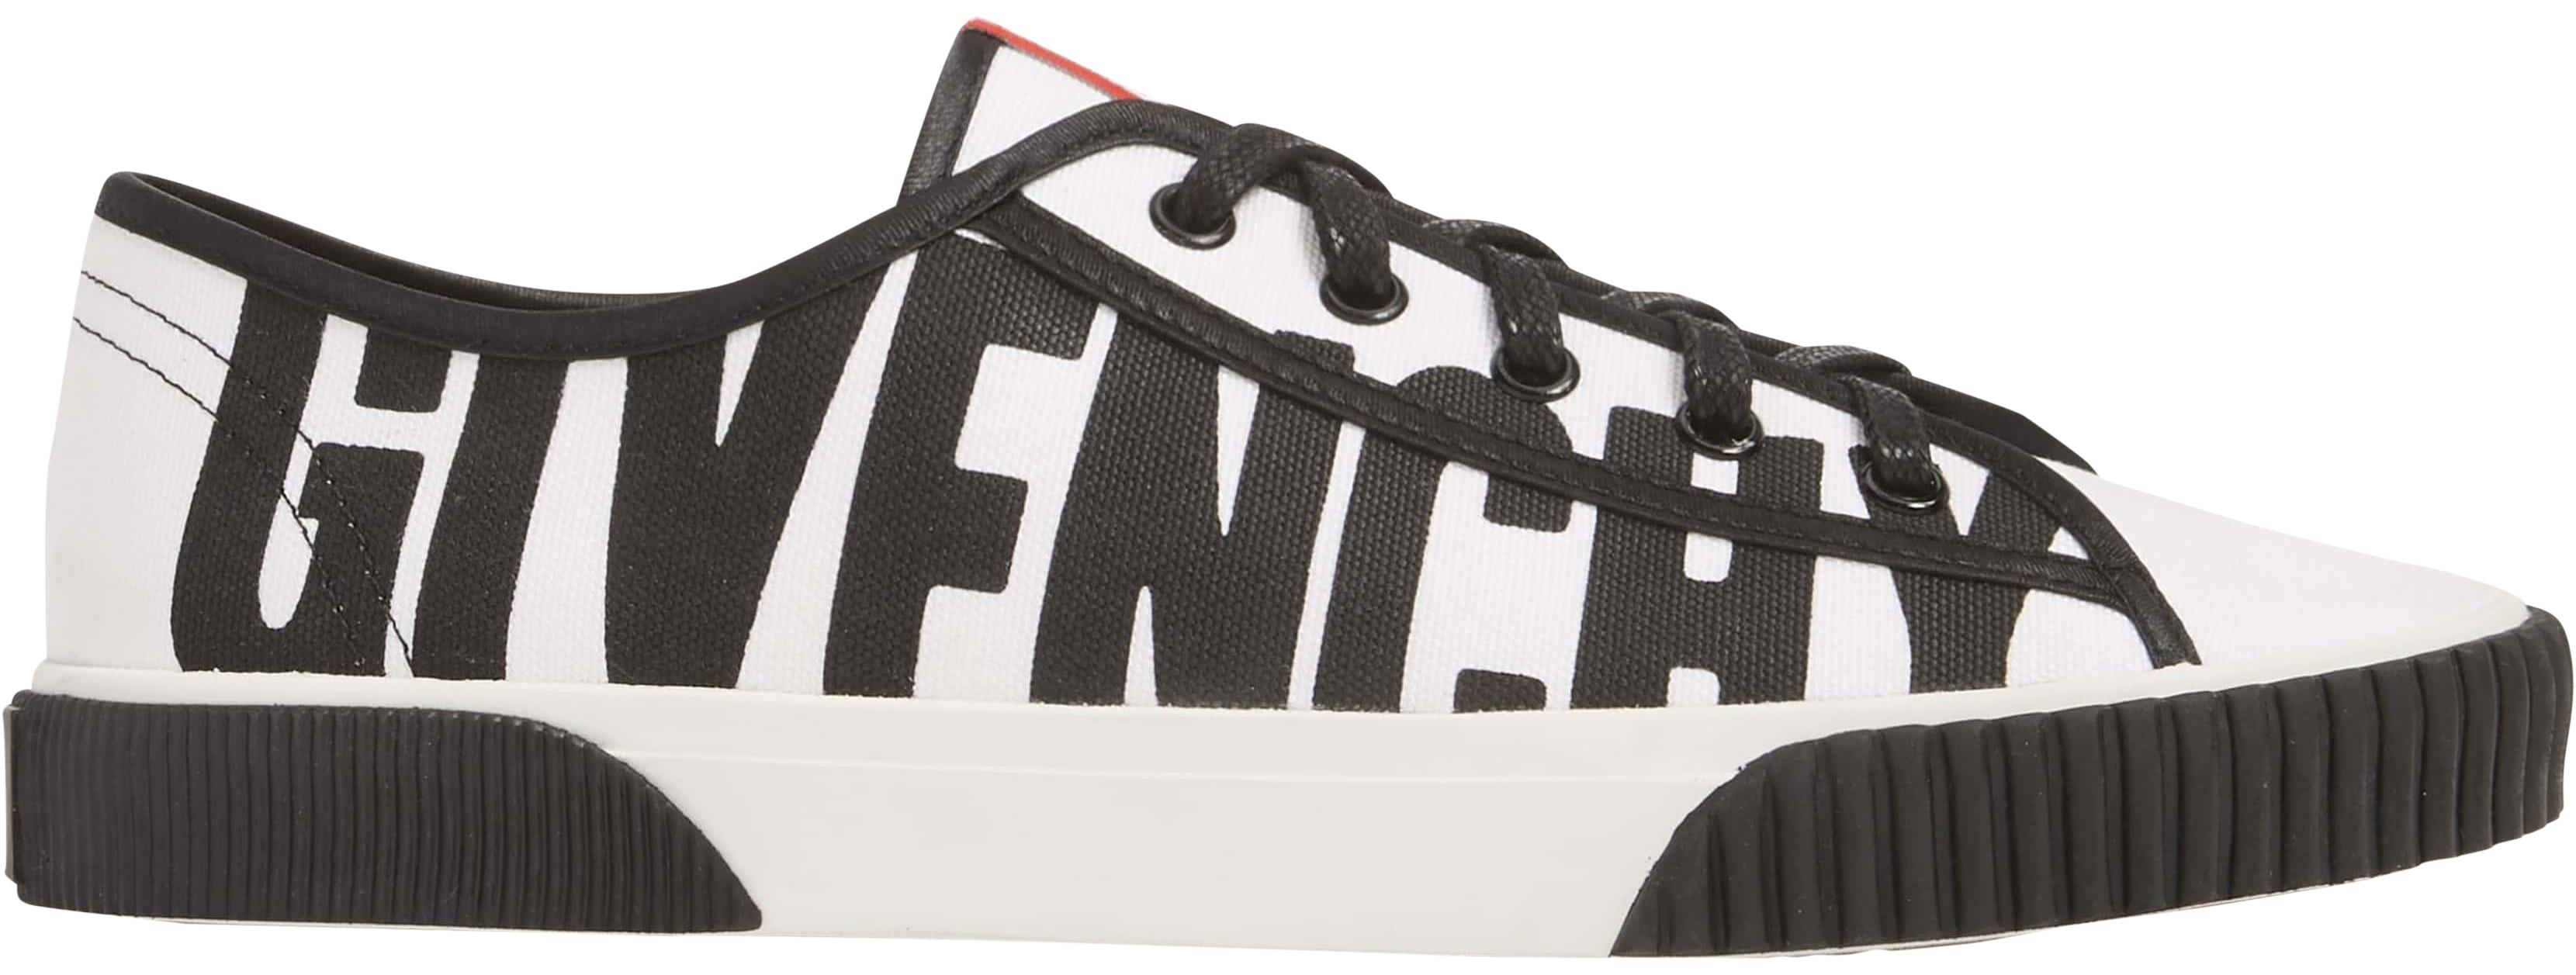 Givenchy White/Black Boxing Sneakers Sneakers Size EU 37.5 (Approx. US 7.5) Regular (M, B)